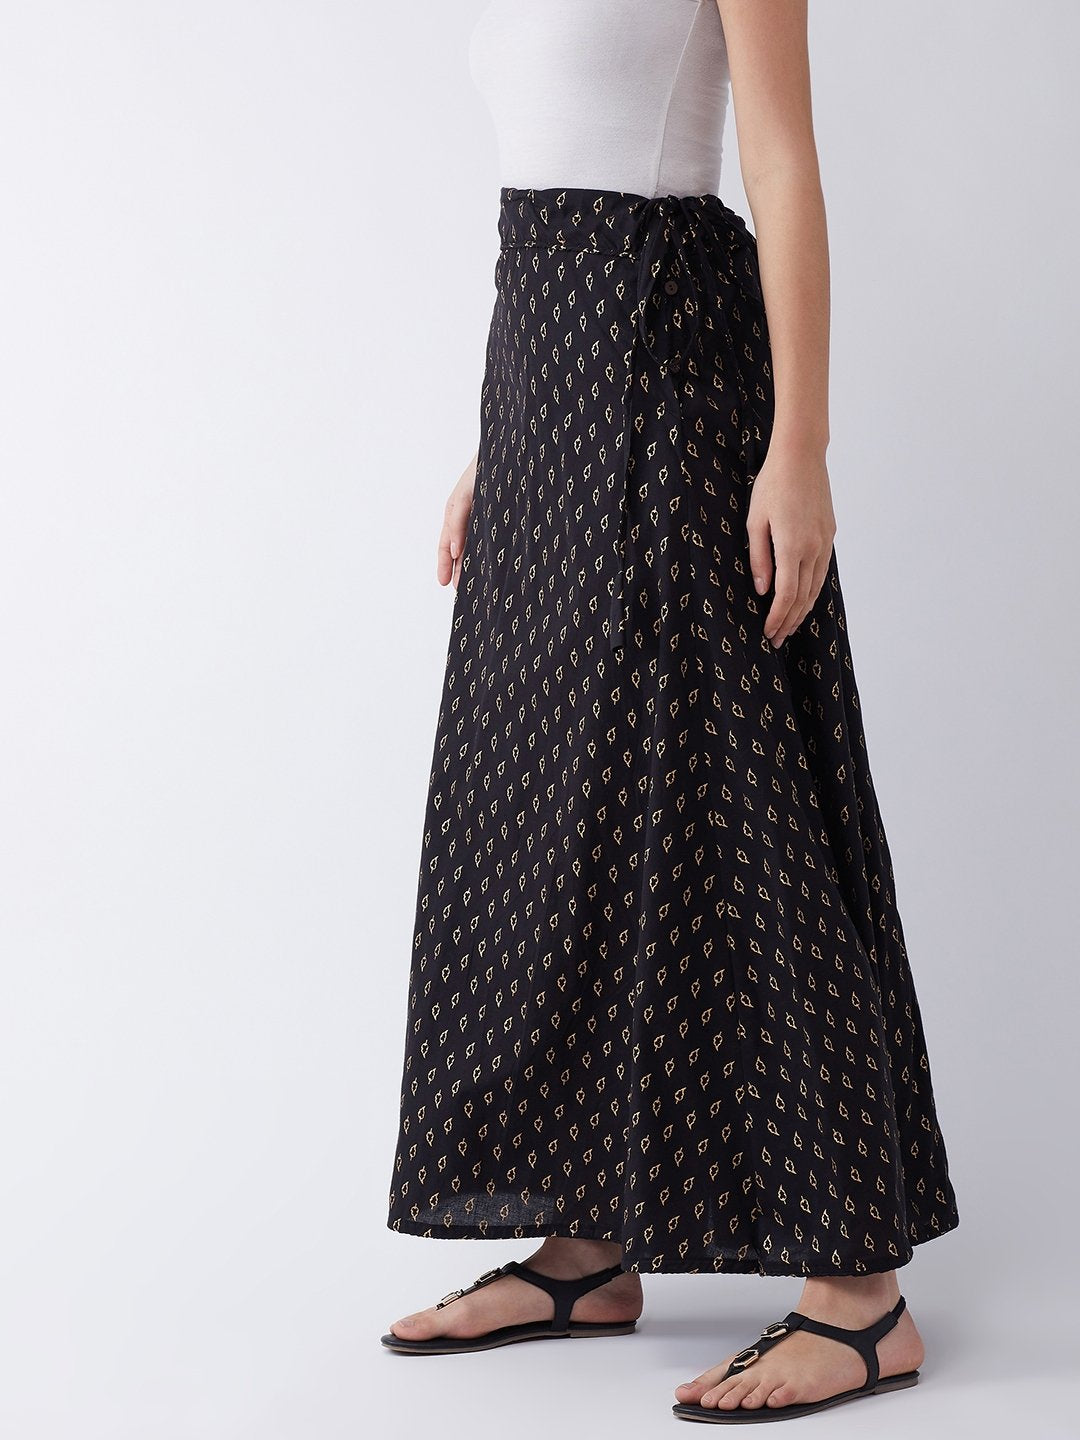 Black Gold Leaf Print Skirt